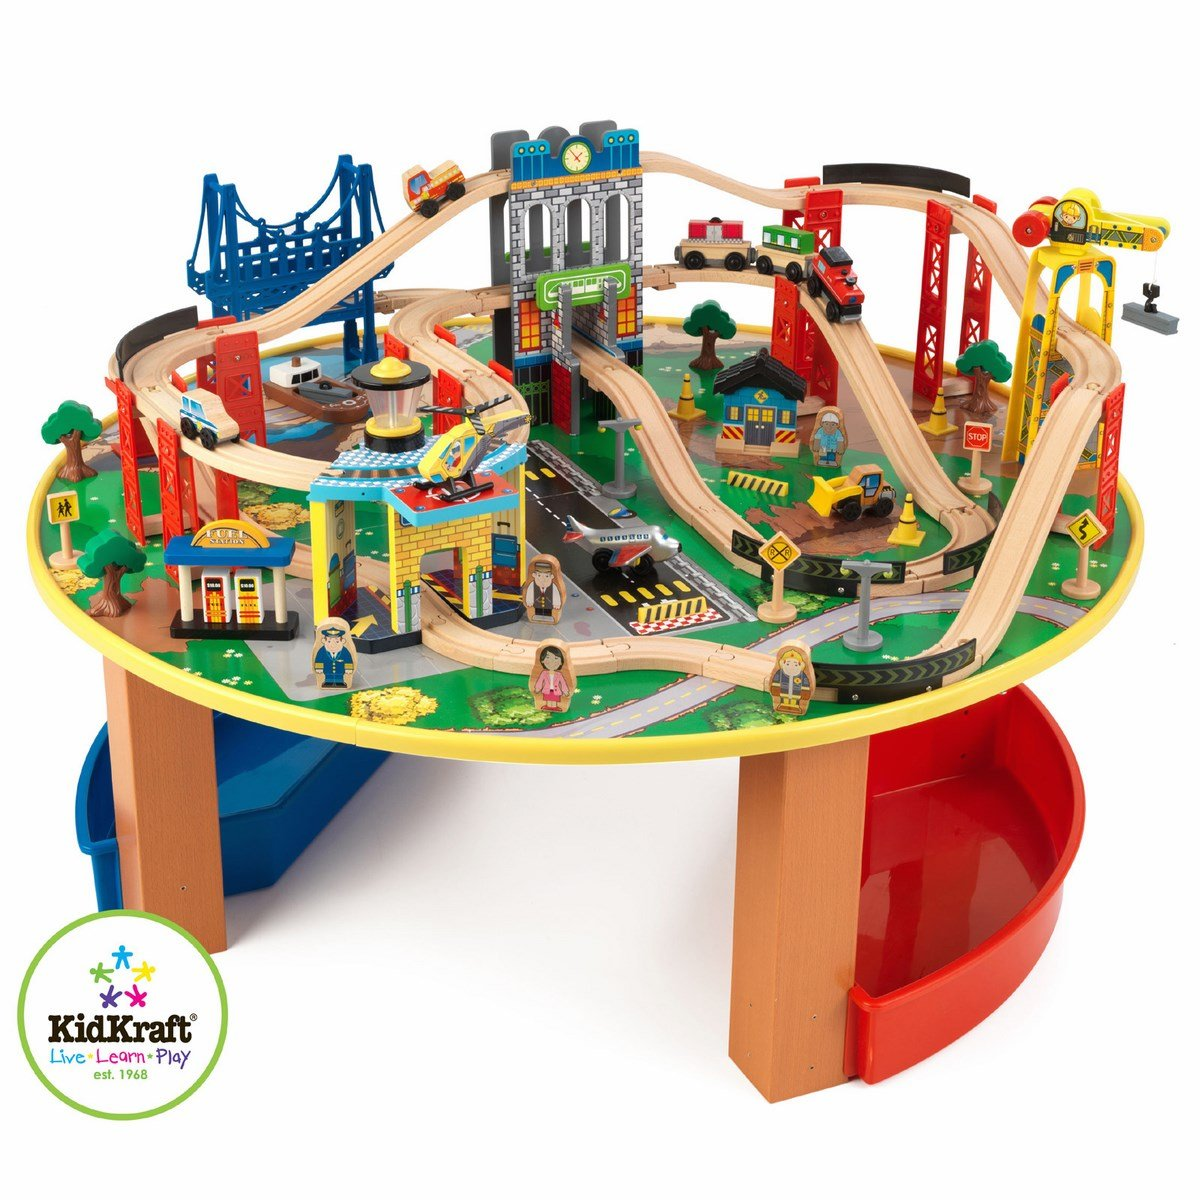 Charming KidKraft 17985 City Exploreru0027s Train Set And Table. Including 80 Pieces Of  Track And Cityscape Scener, From Skyscrapers To Towering Trestle Bridges,  ...